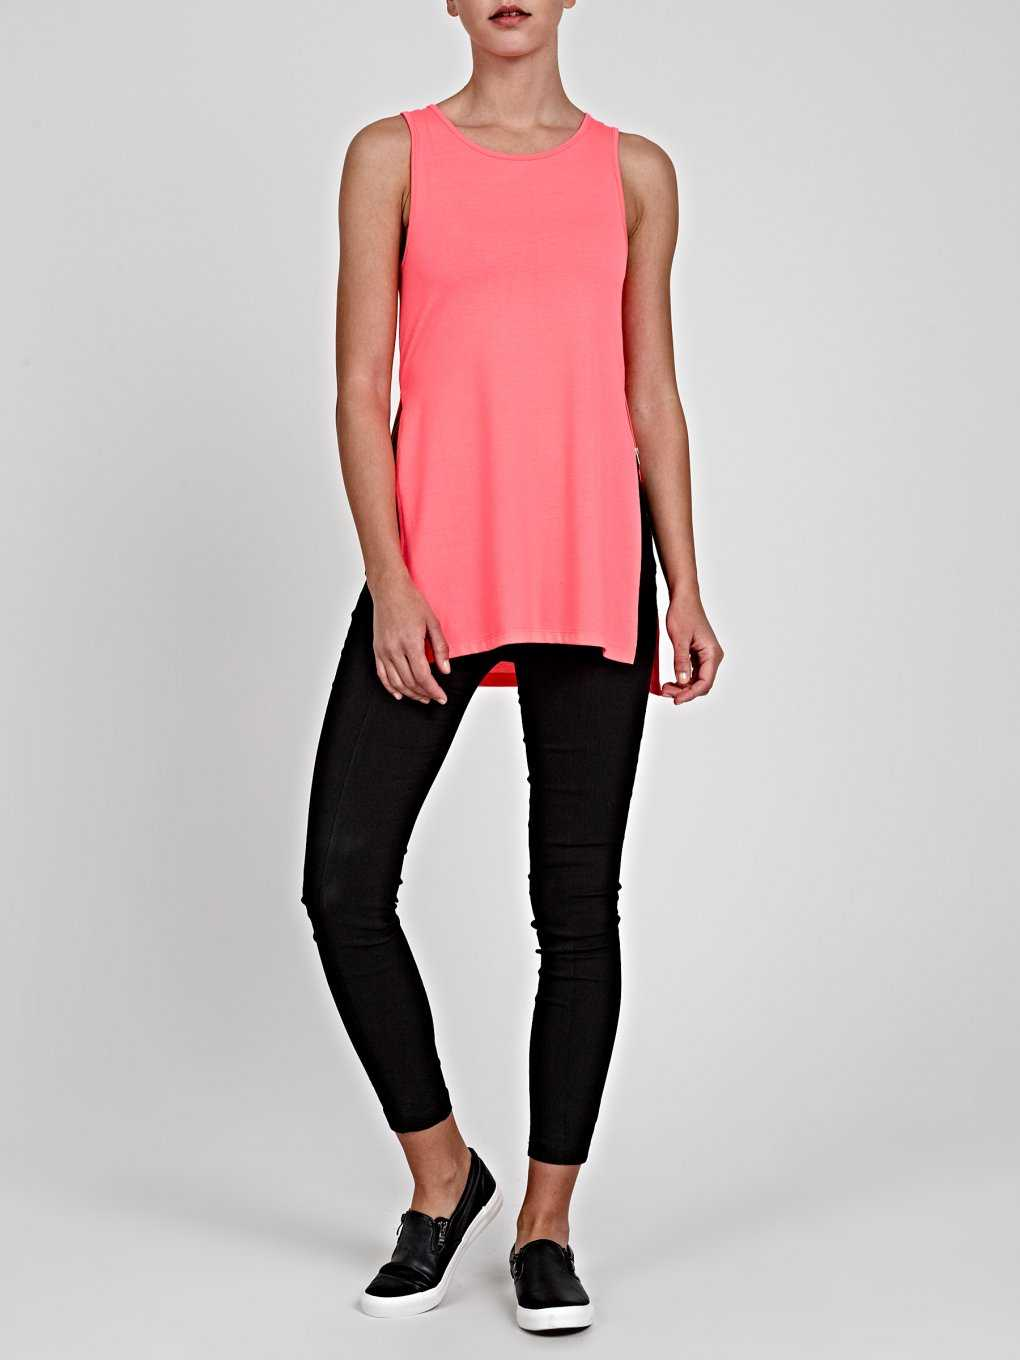 LONGLINE TANK TOP WITH SIDE SLITS